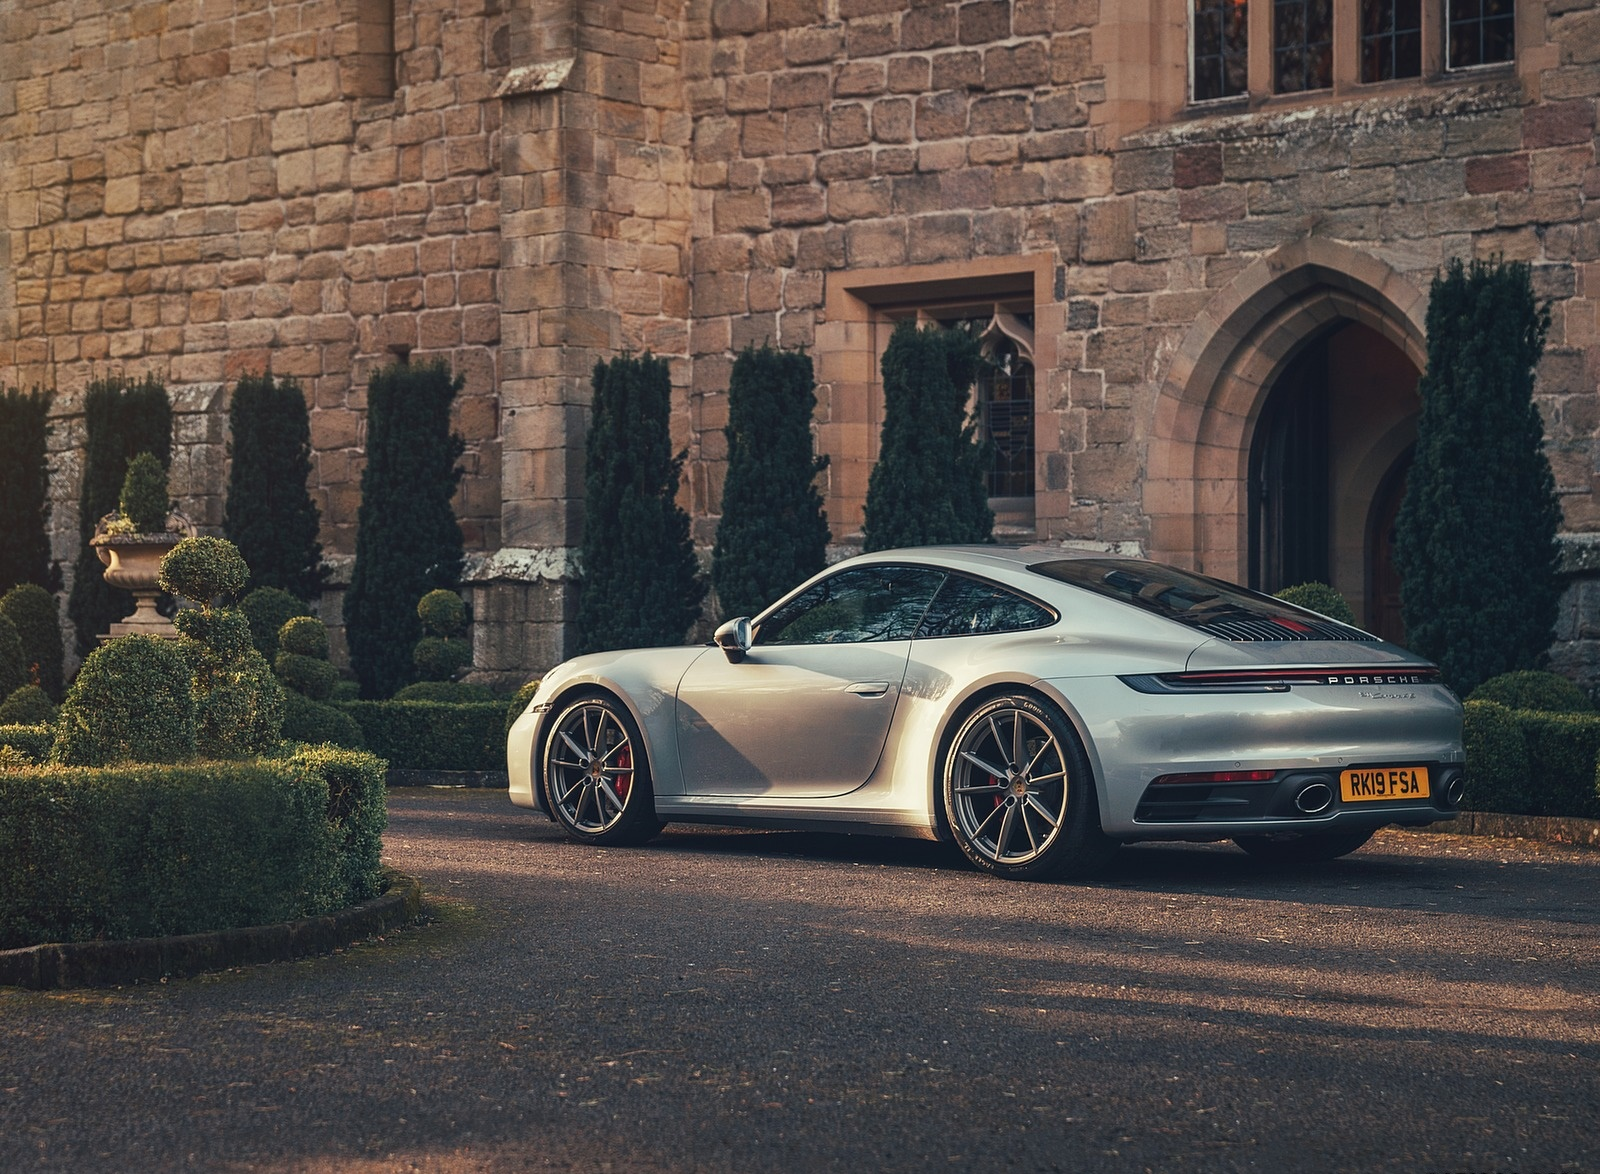 2019 Porsche 911 (992) Carrera 4S (UK-Spec) Rear Three-Quarter Wallpaper (11)